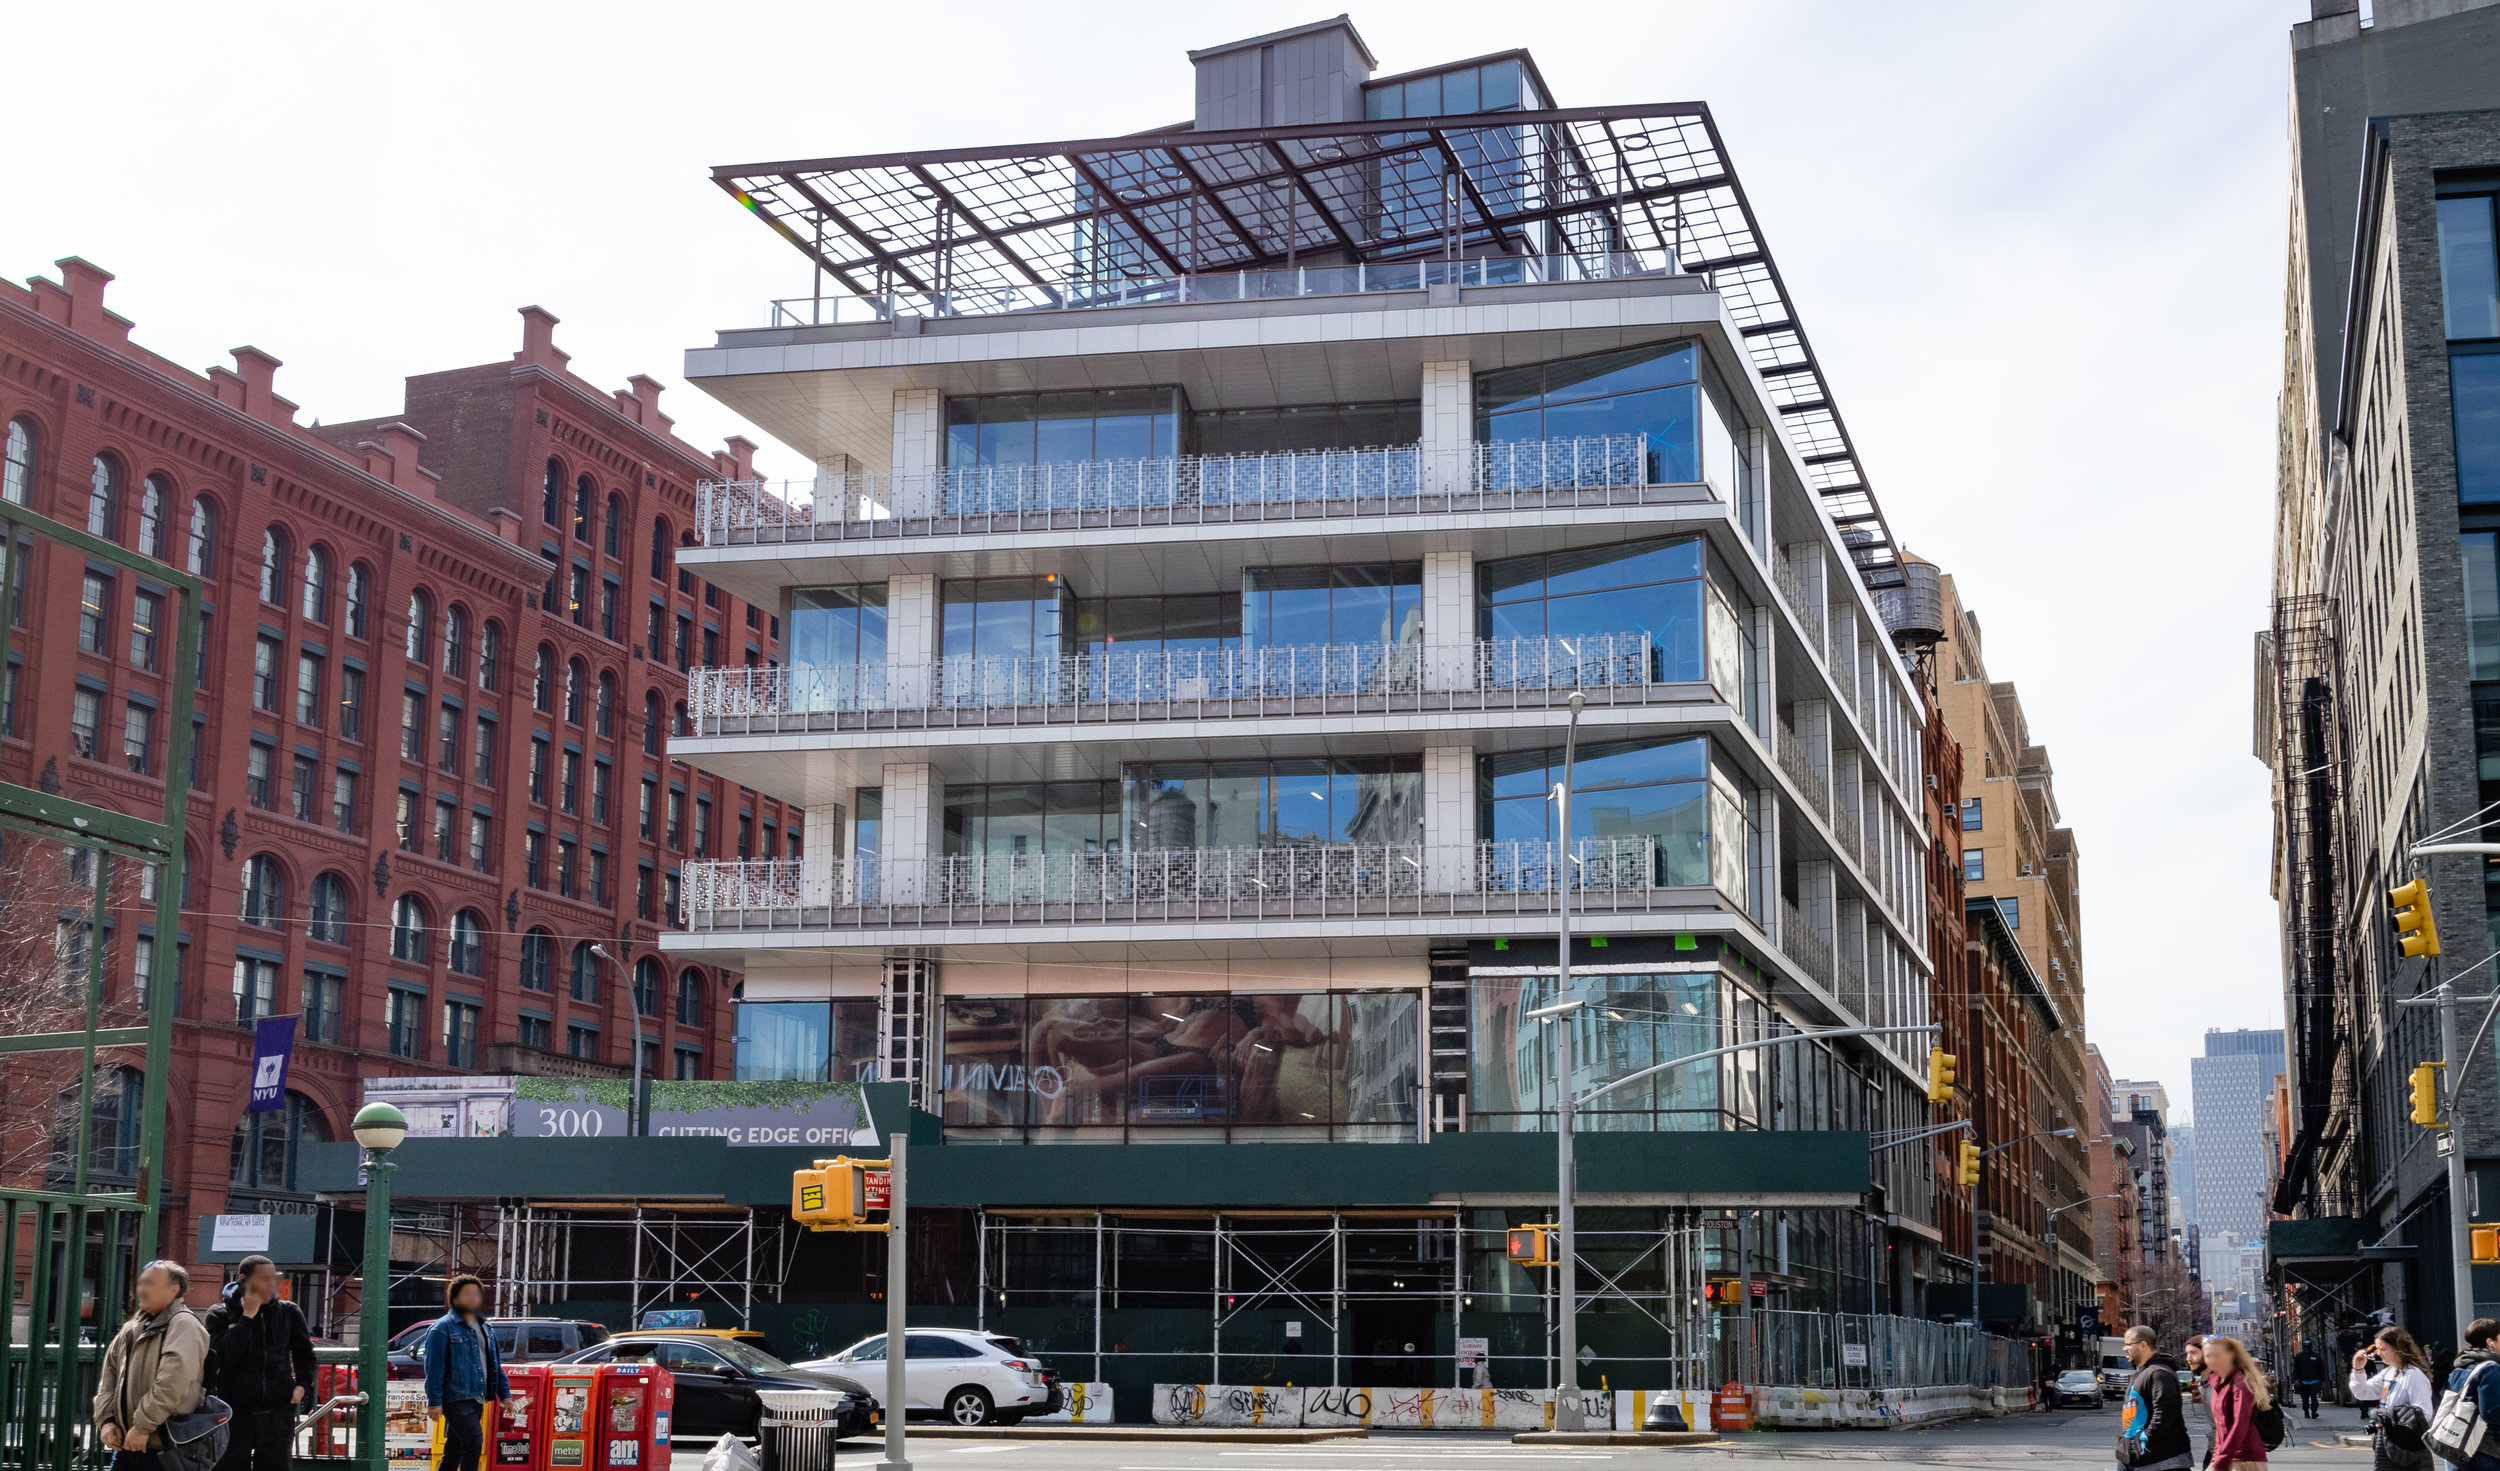 300 Lafayette St Soho Manhattan Project Update